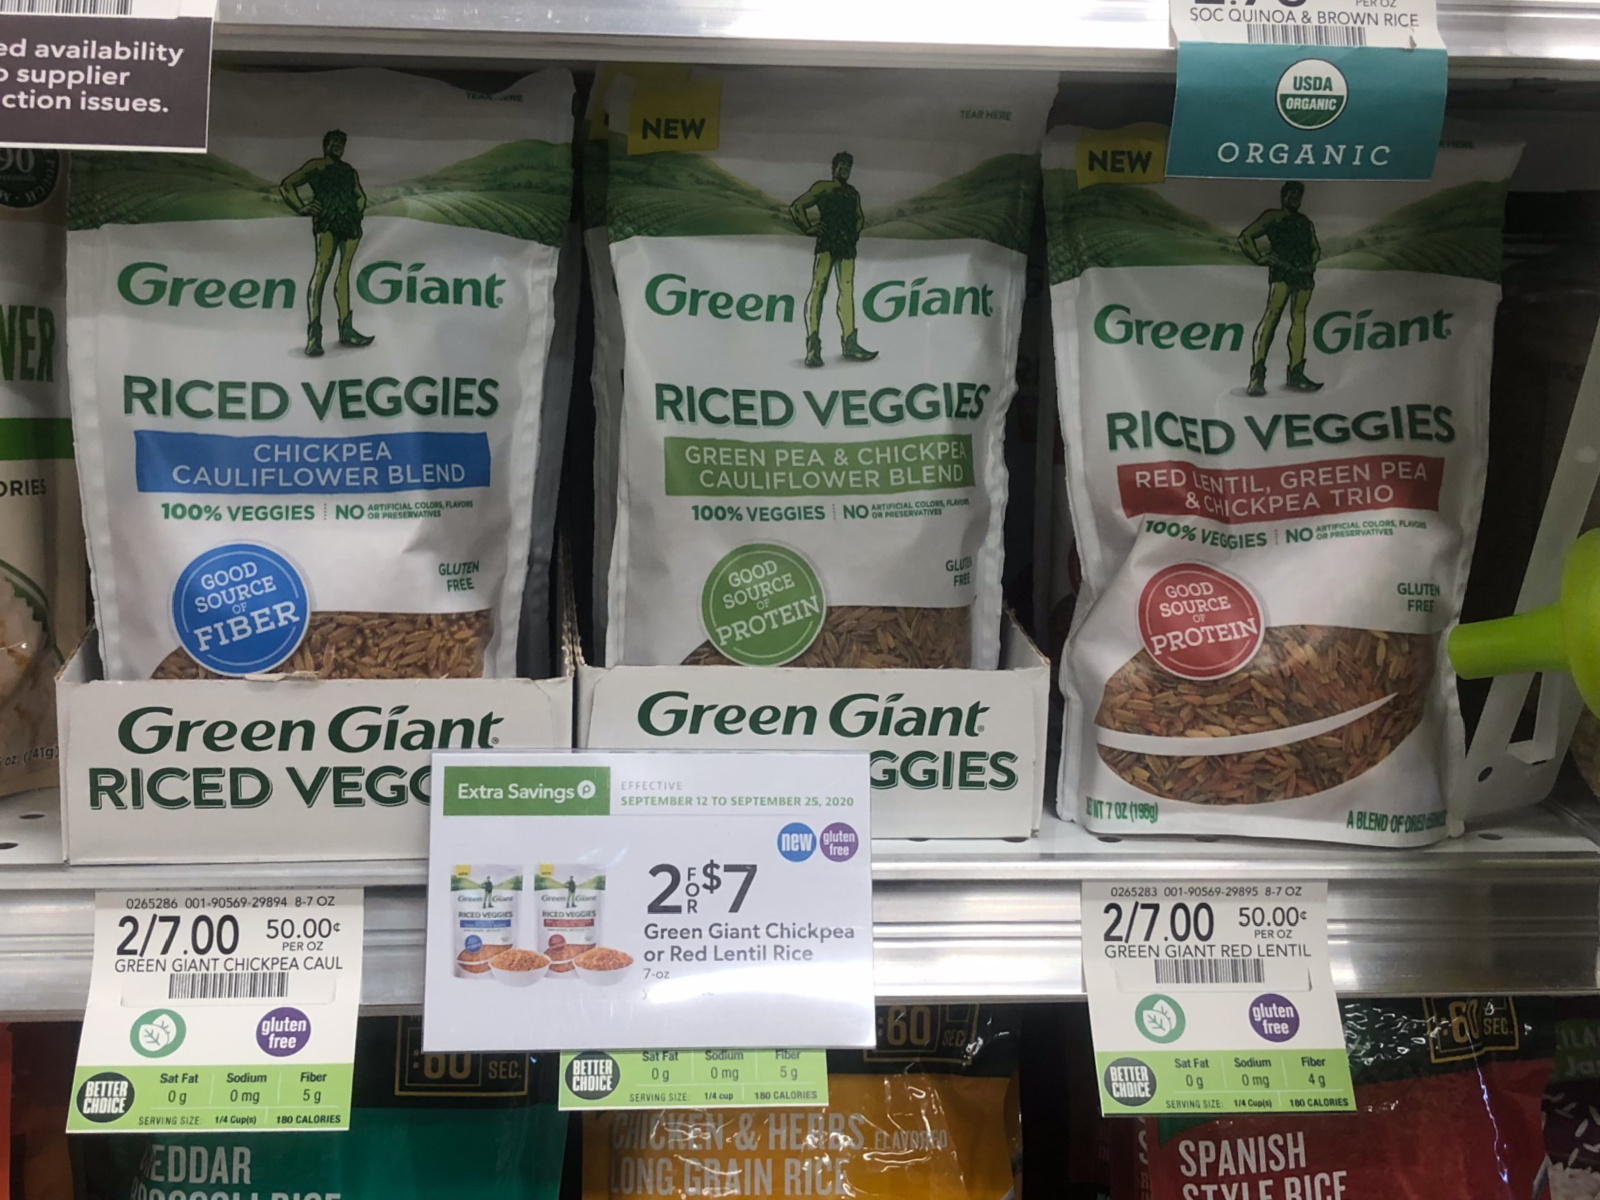 Greek Riced Veggie Salad - Perfect Meal To Go With The Sale On Green Giant® Riced Veggies At Publix! on I Heart Publix